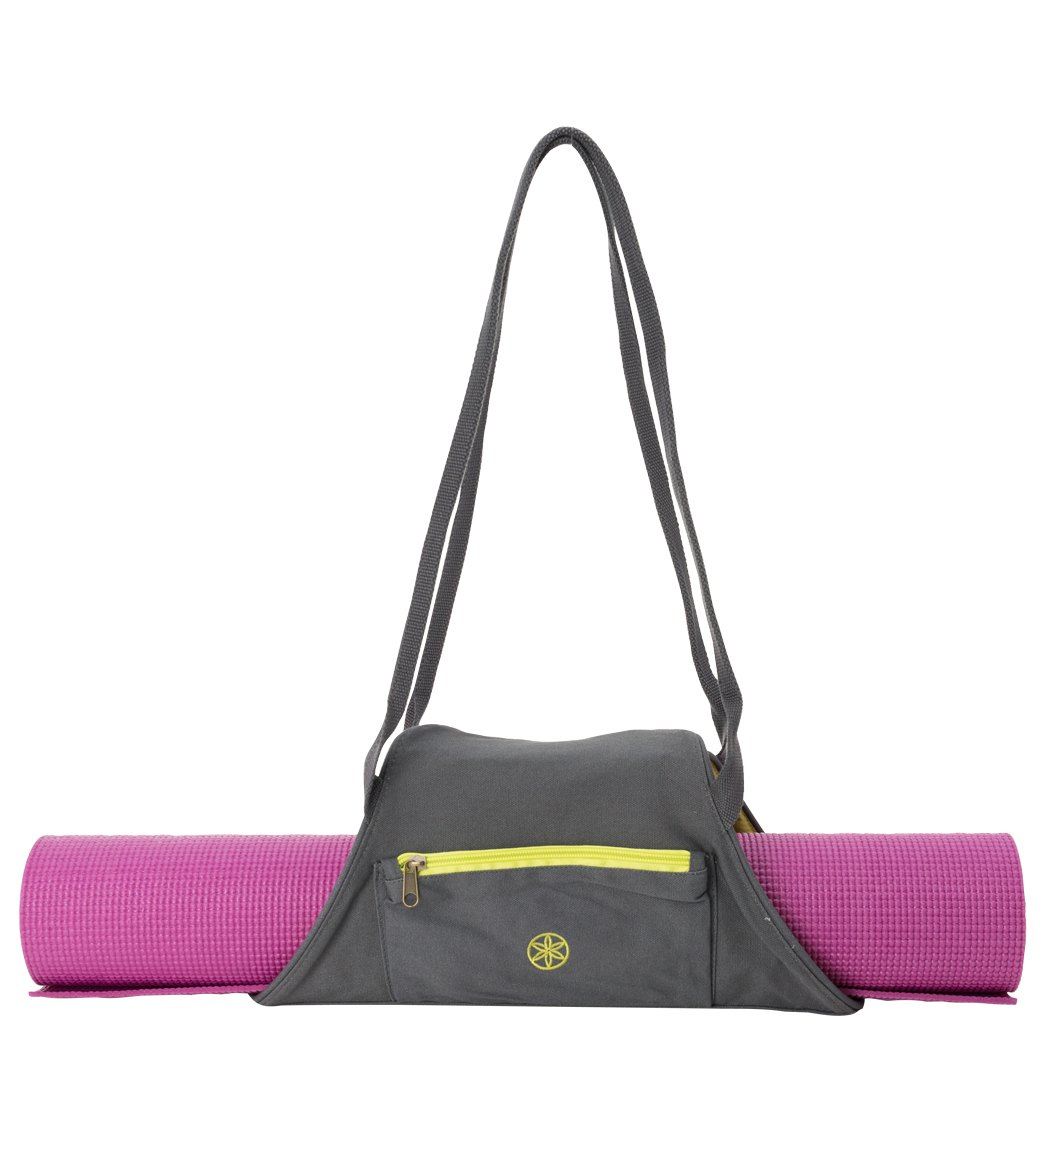 1d1cb8031fce Gaiam On-The-Go Yoga Mat Carrier at YogaOutlet.com